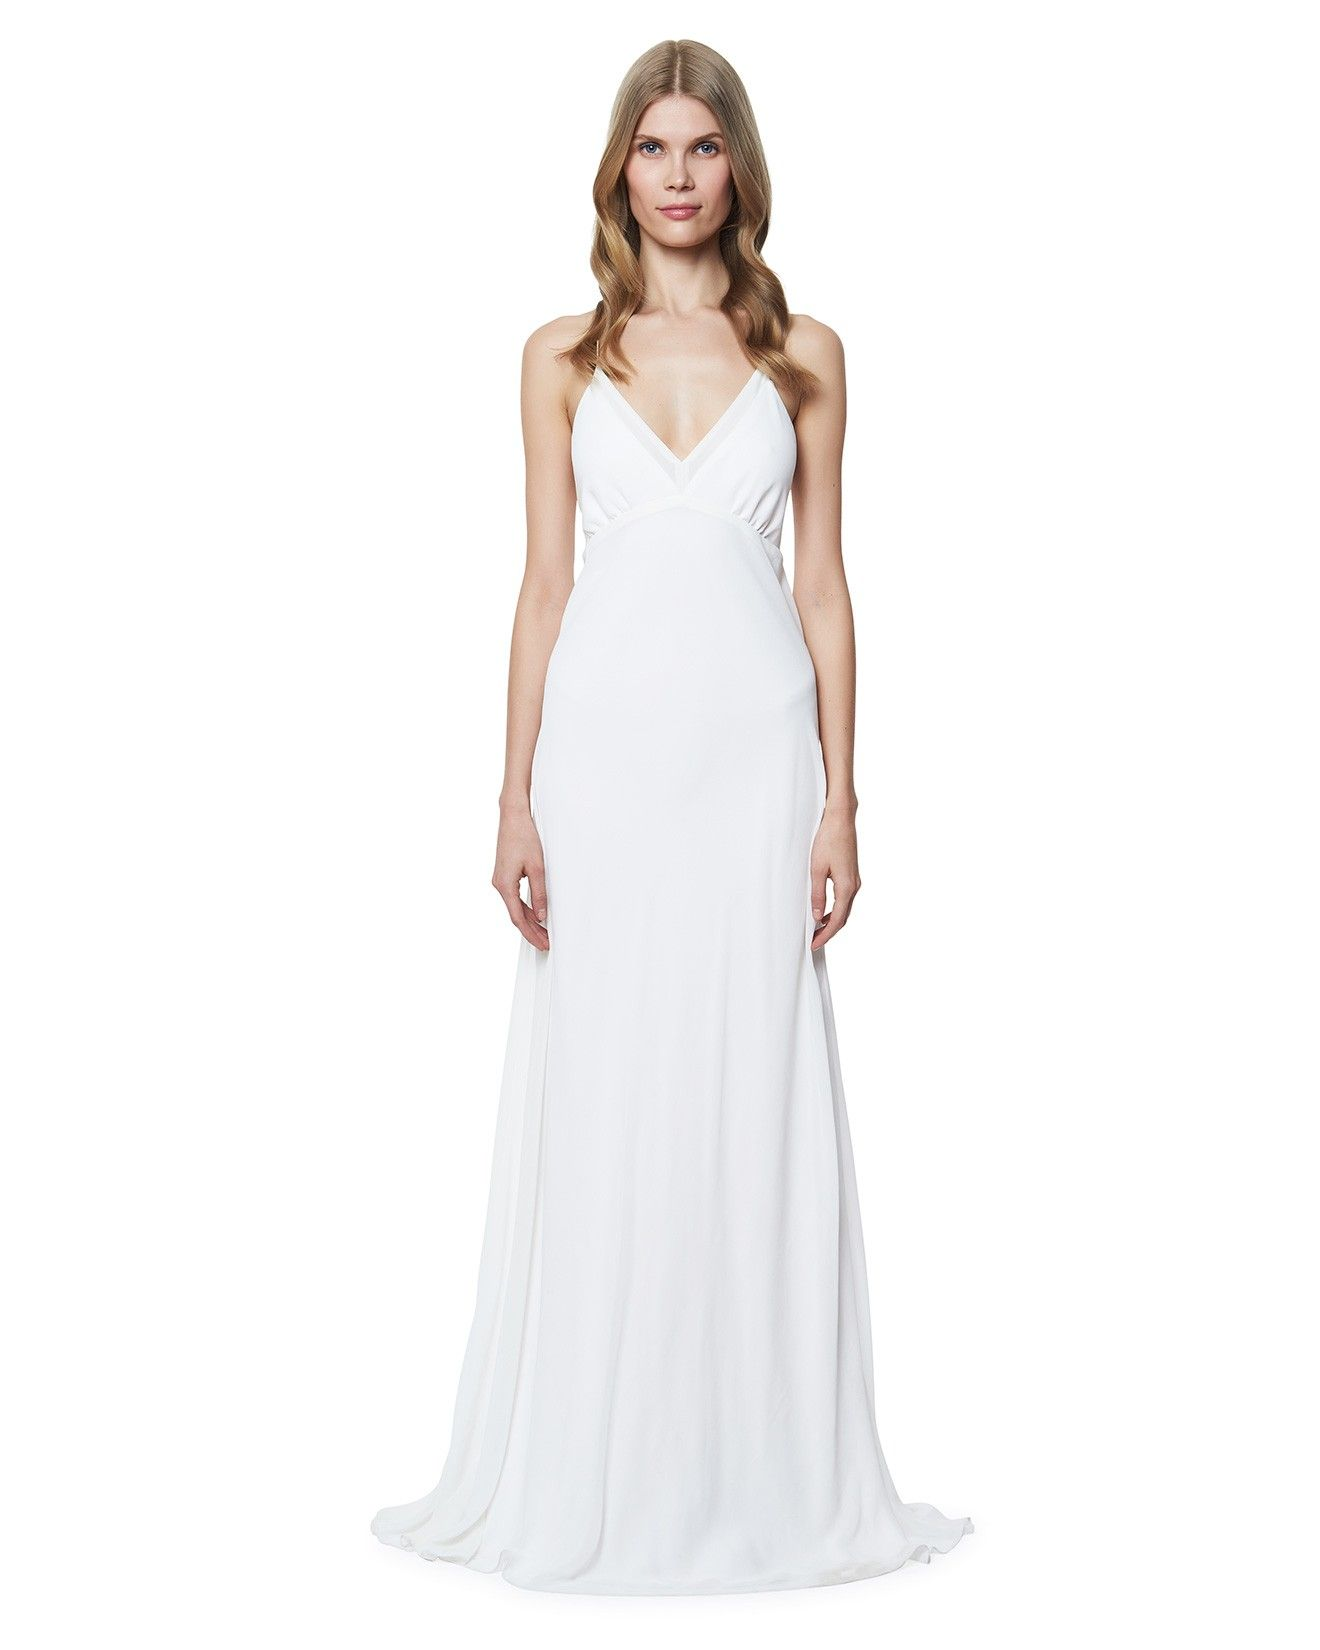 Wedding Dresses Under 500: Slip Gown In Ivory Chiffon With Sheer Detailing At Chest